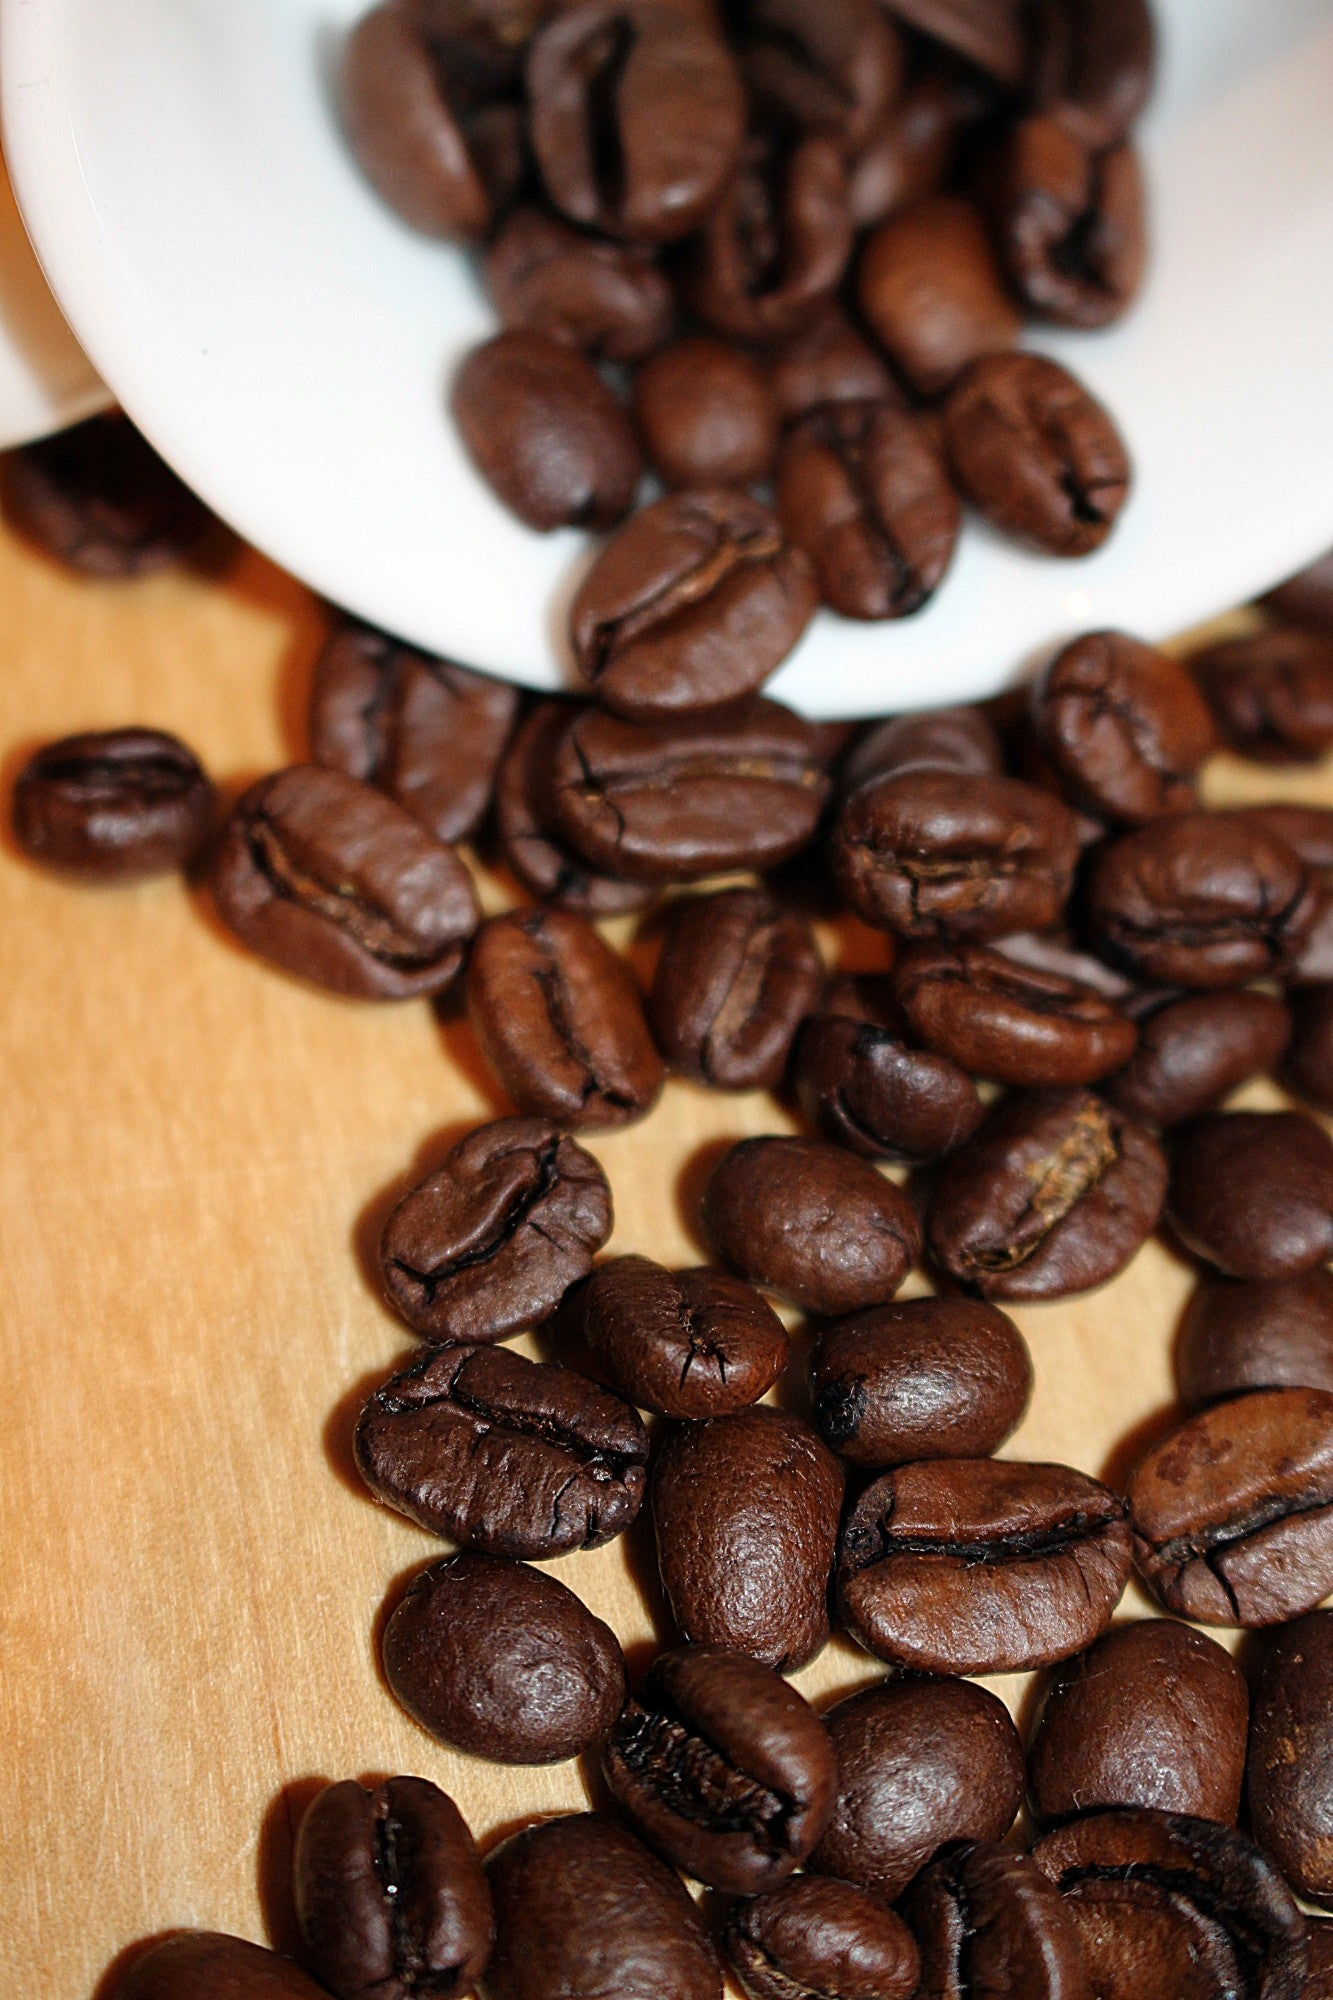 Coffee at home, what makes Speciality Coffee Different